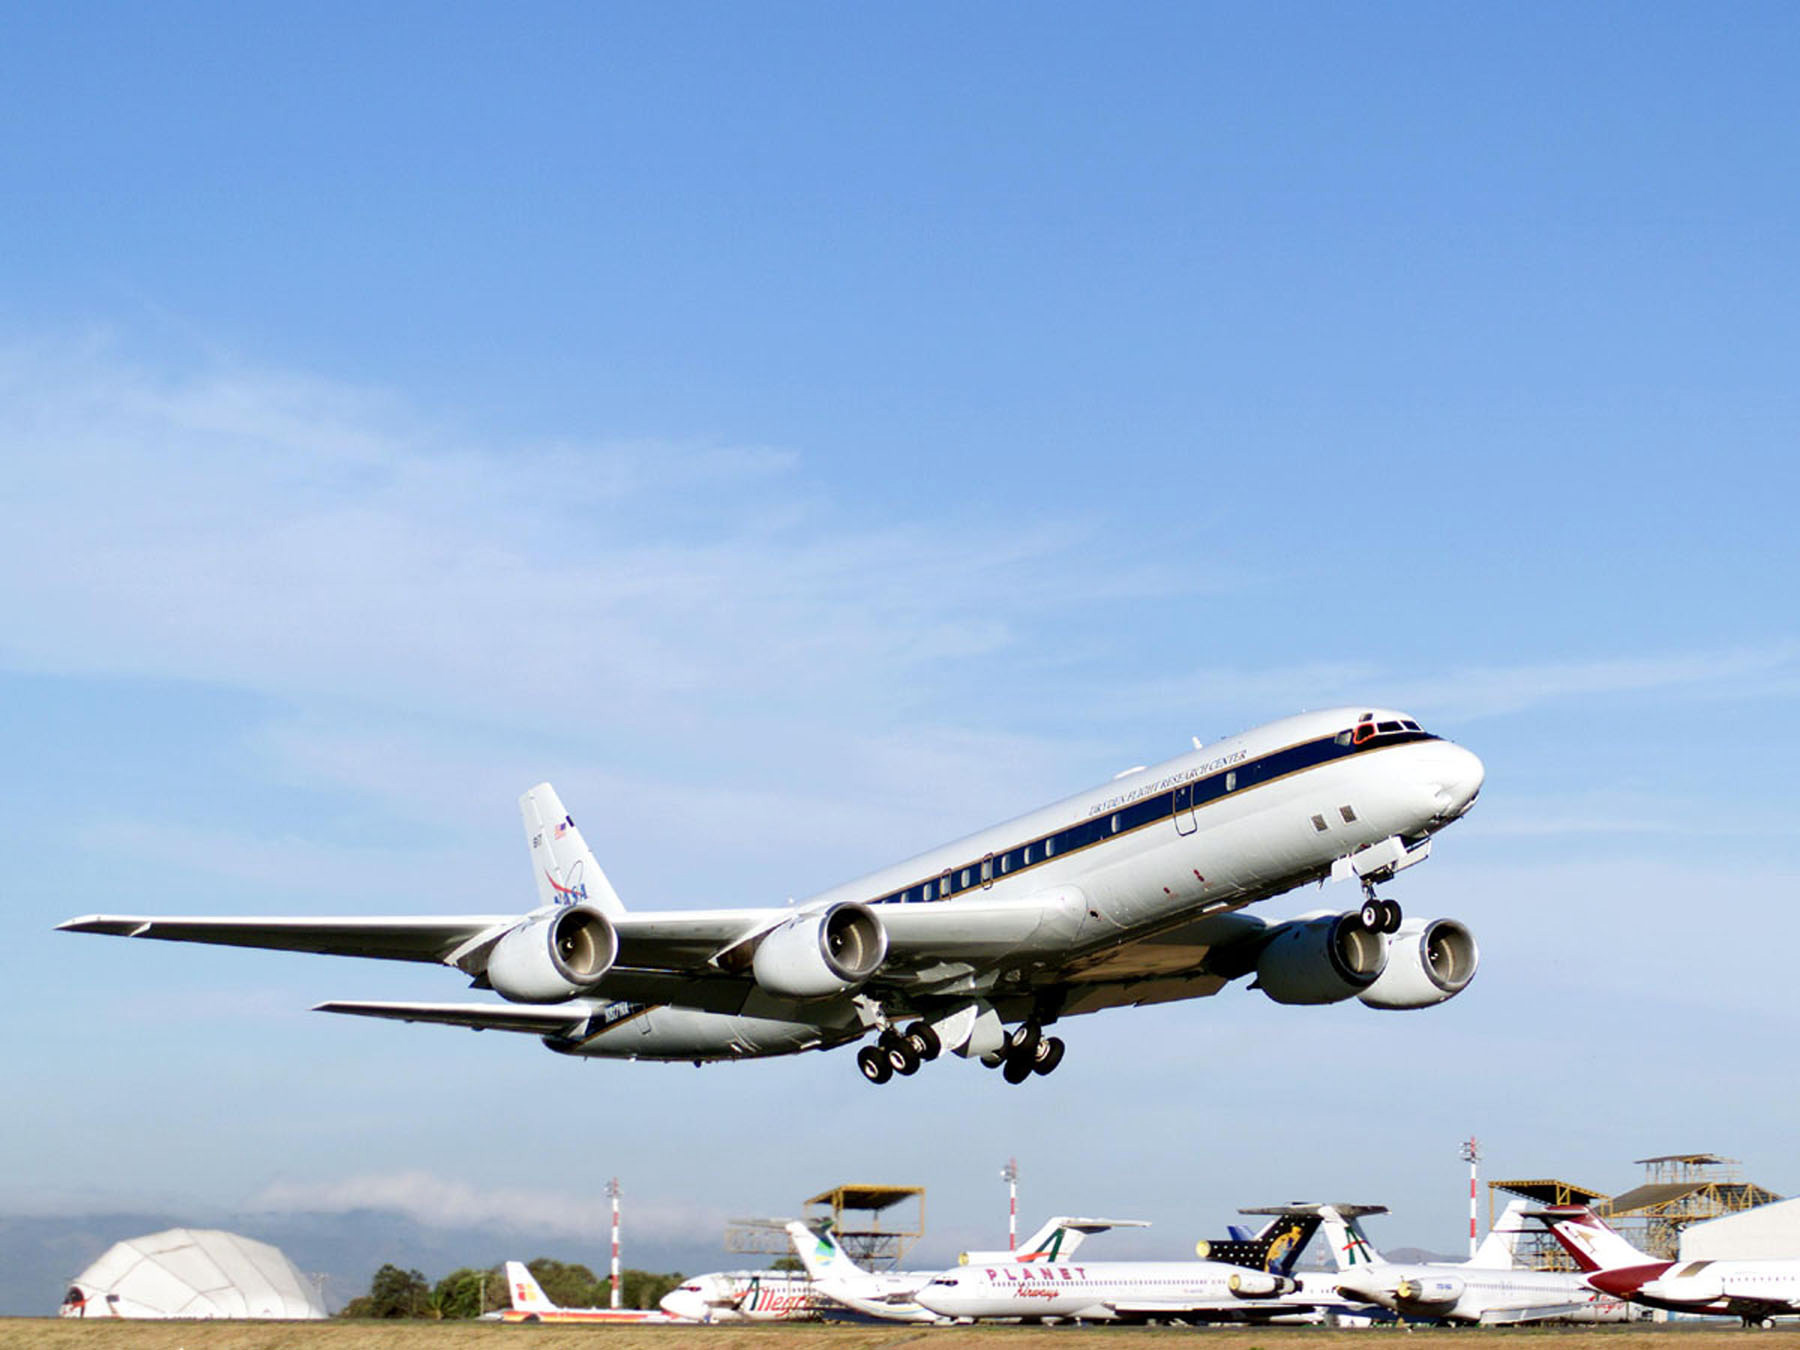 NASA - NASA's DC-8 Flying laboratory Takes off From Juan